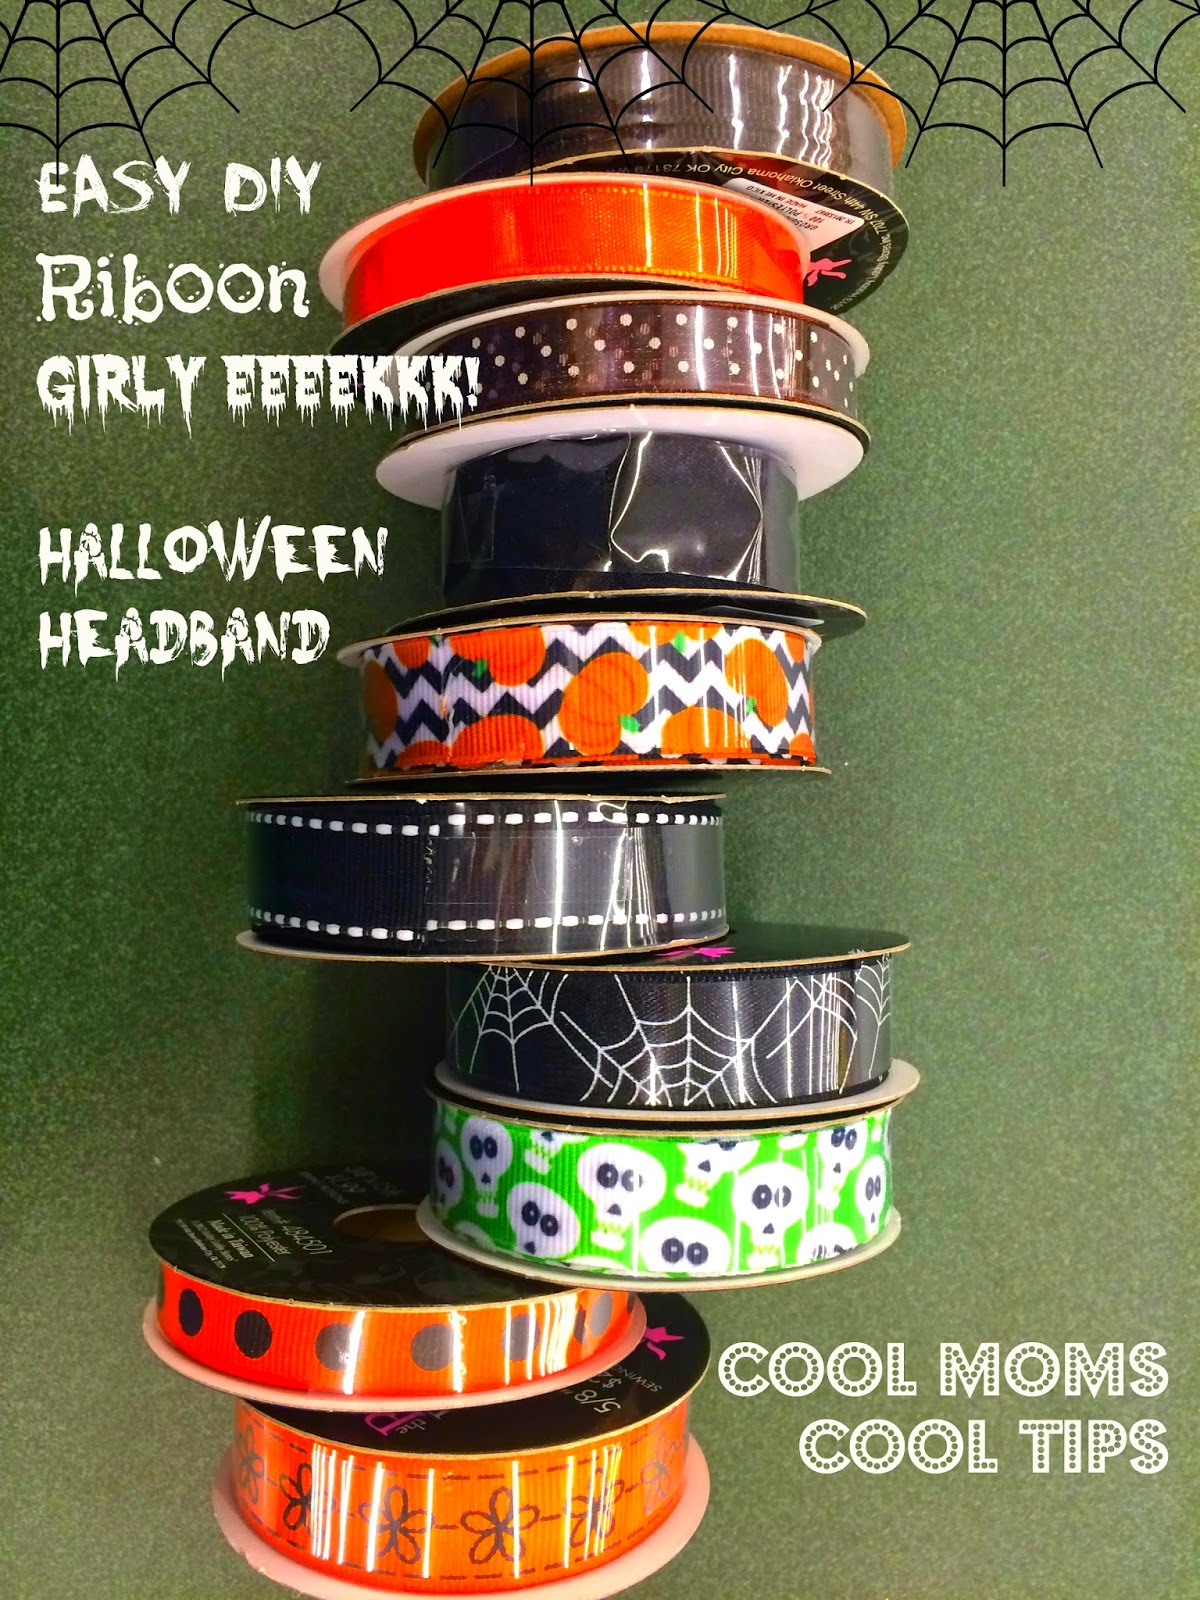 cool moms cool tips halloween headband for girls ribbon DIY